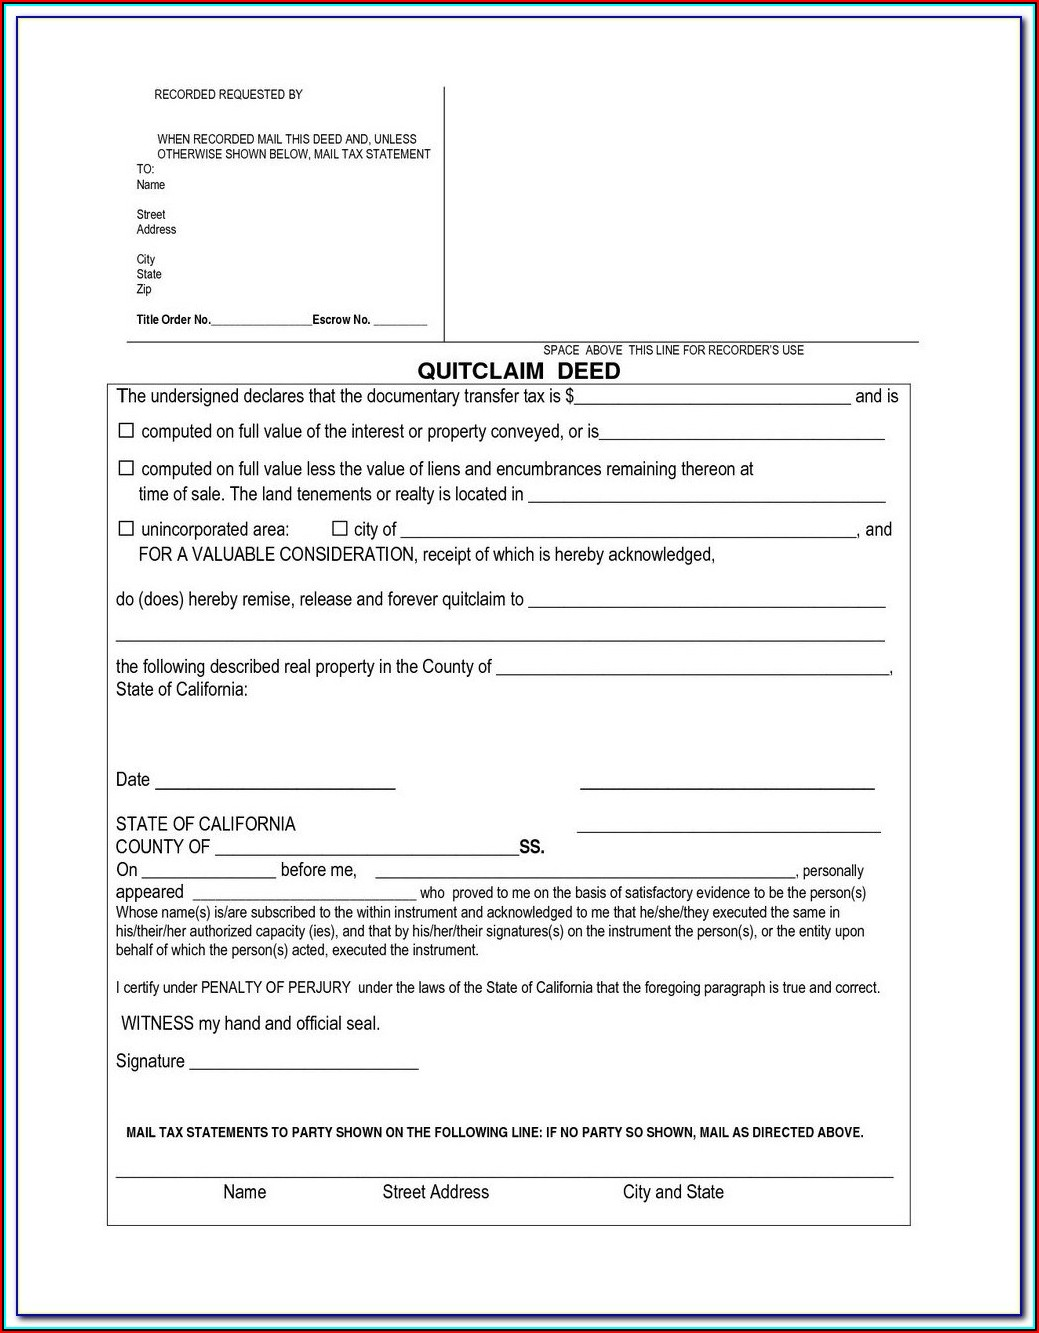 Baltimore City Quit Claim Deed Form